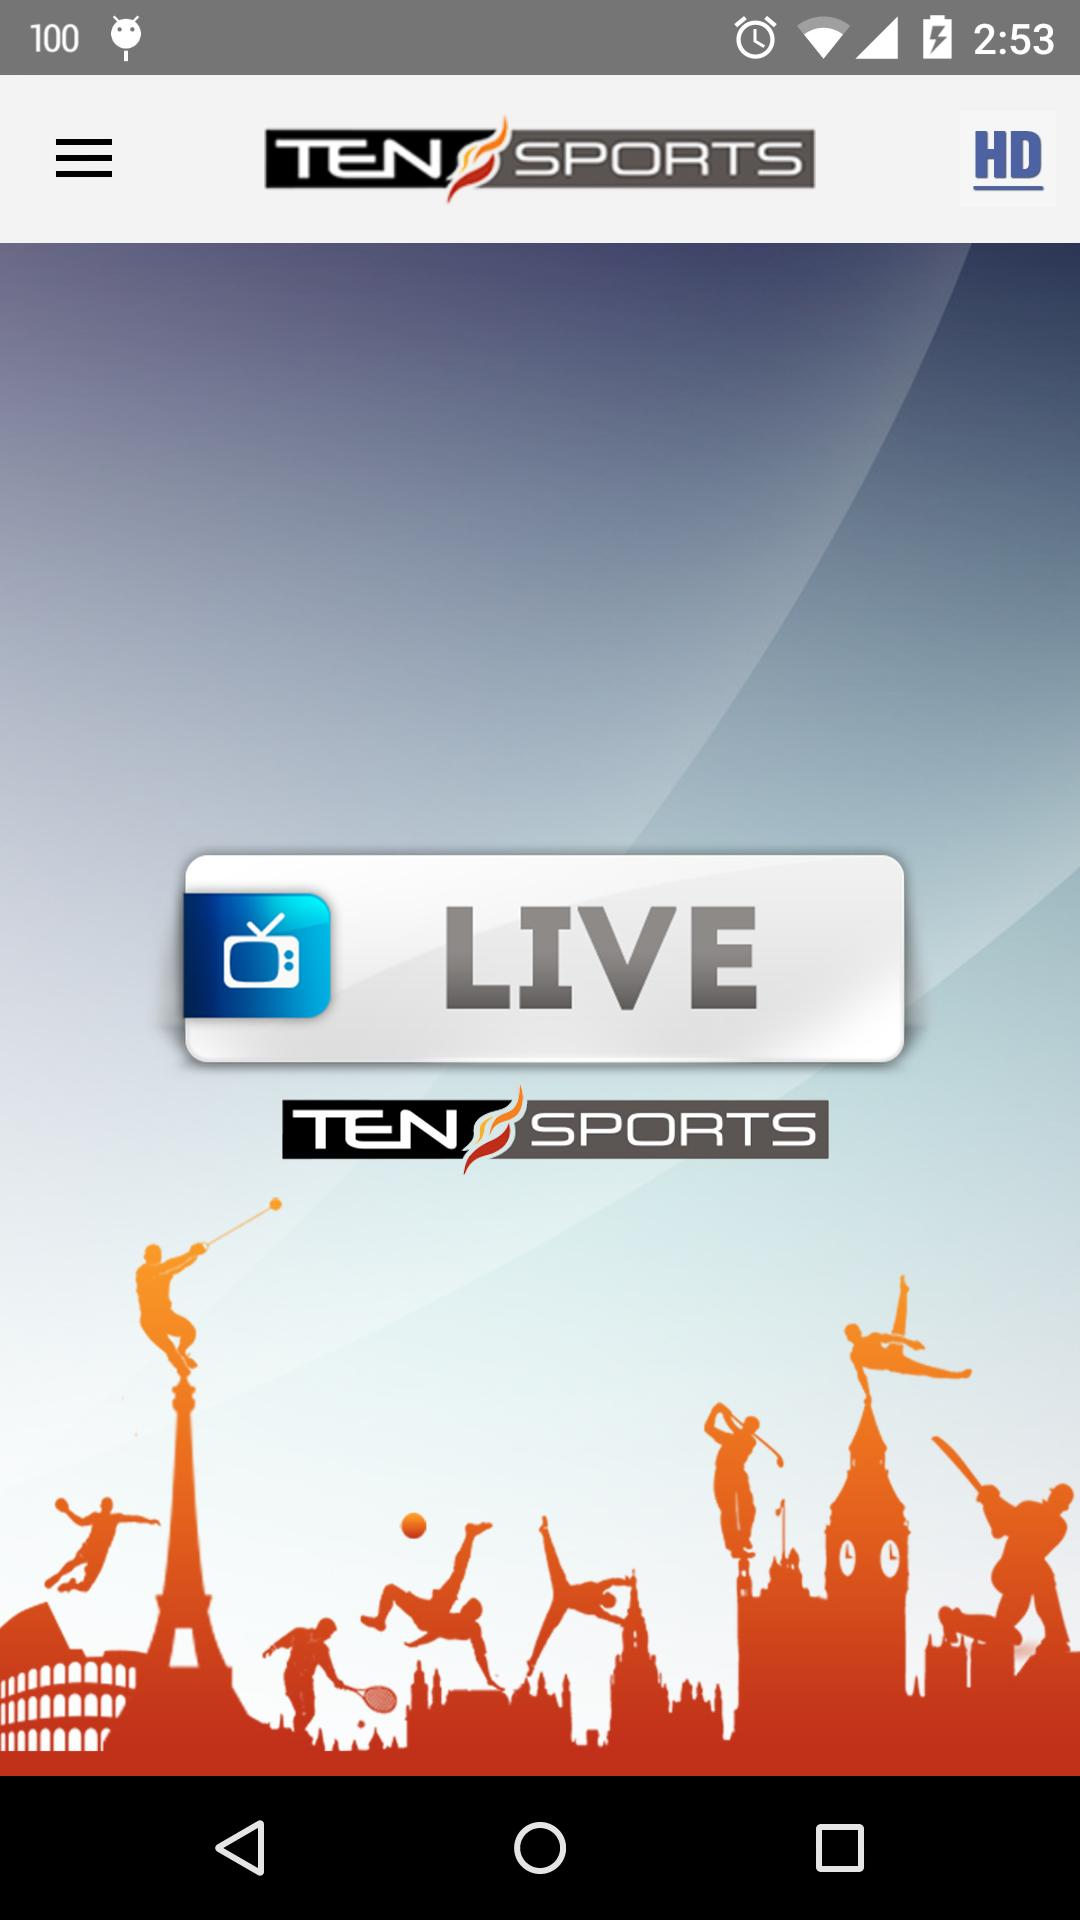 Tensports for Android - APK Download